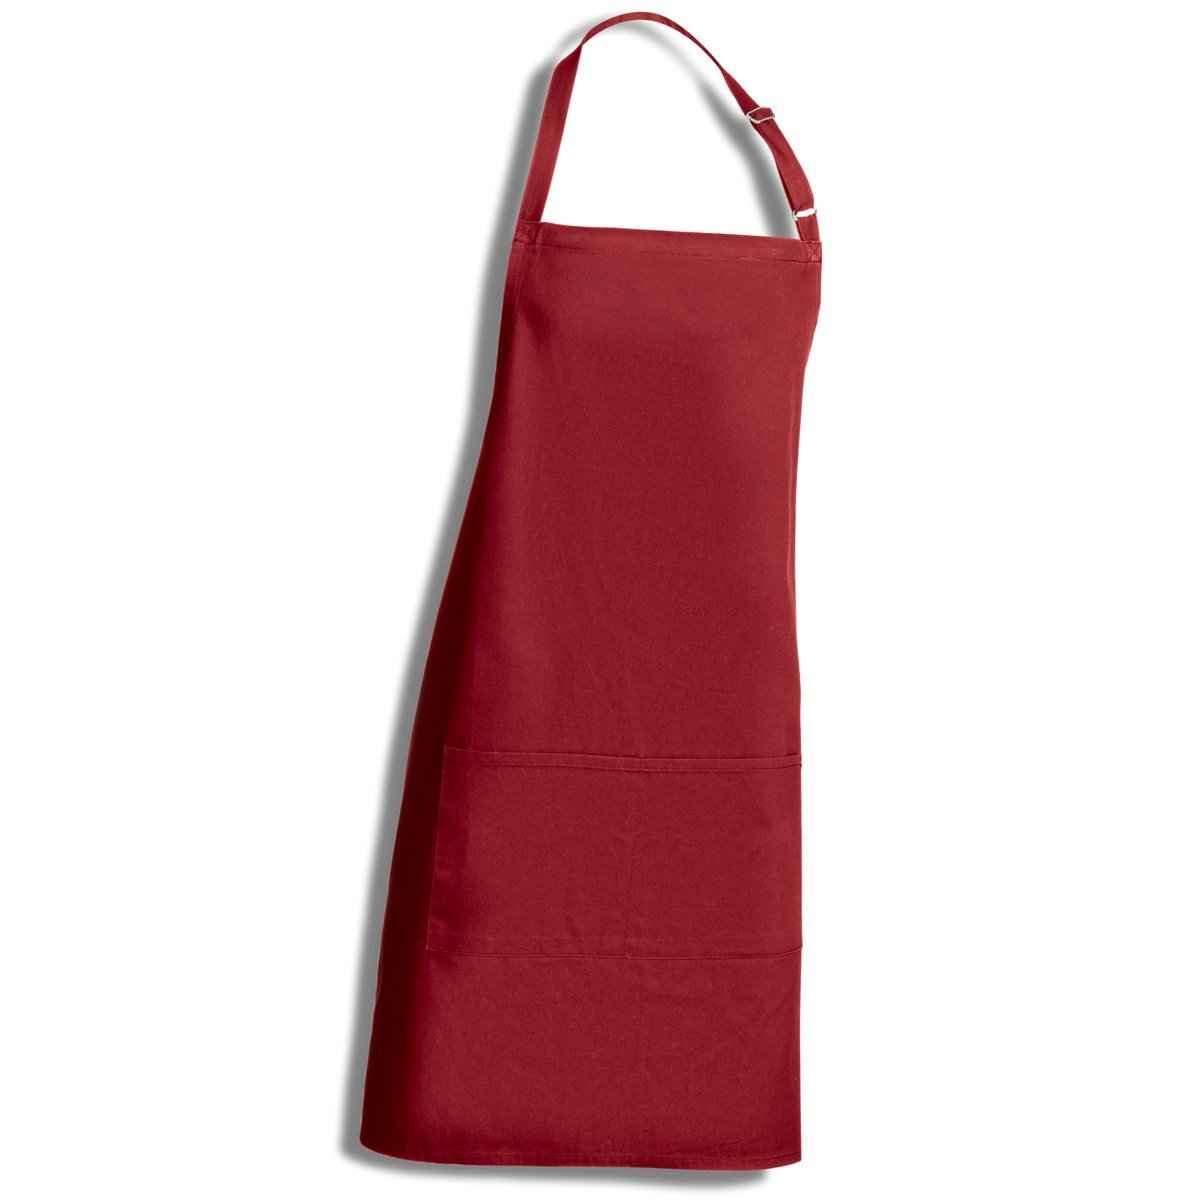 Kirando's Kitchen Apron 100% Cotton – High Quality with 200 g/m2 – 71 cm x 85 cm – Bordeaux